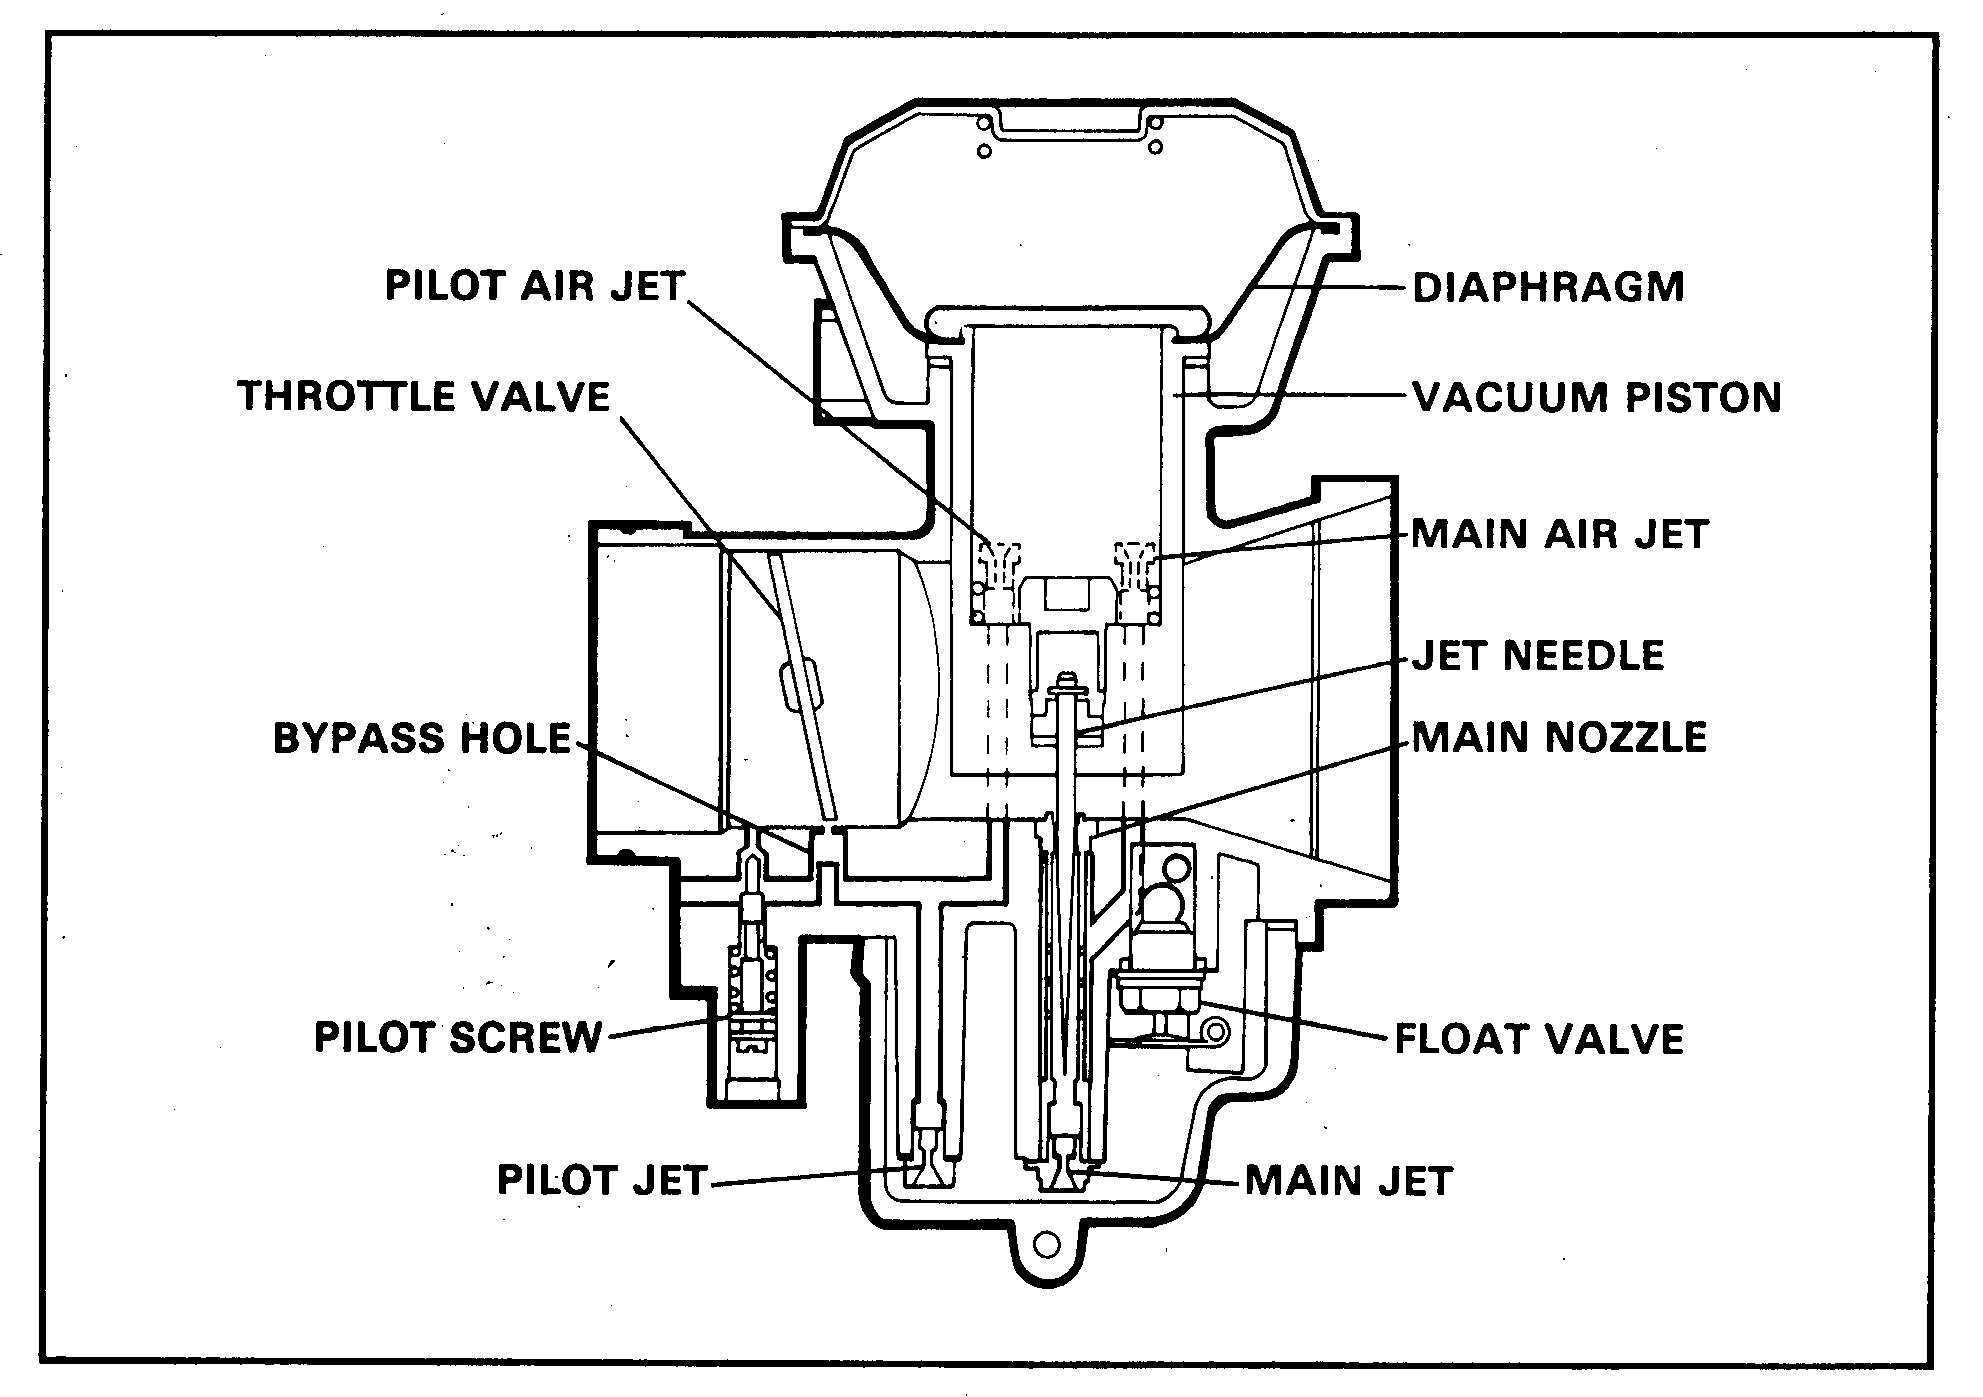 Yamaha Virago Carburetor Wiring Diagram Yamaha Wiring Diagrams – Xv750 Wiring Diagram 1985